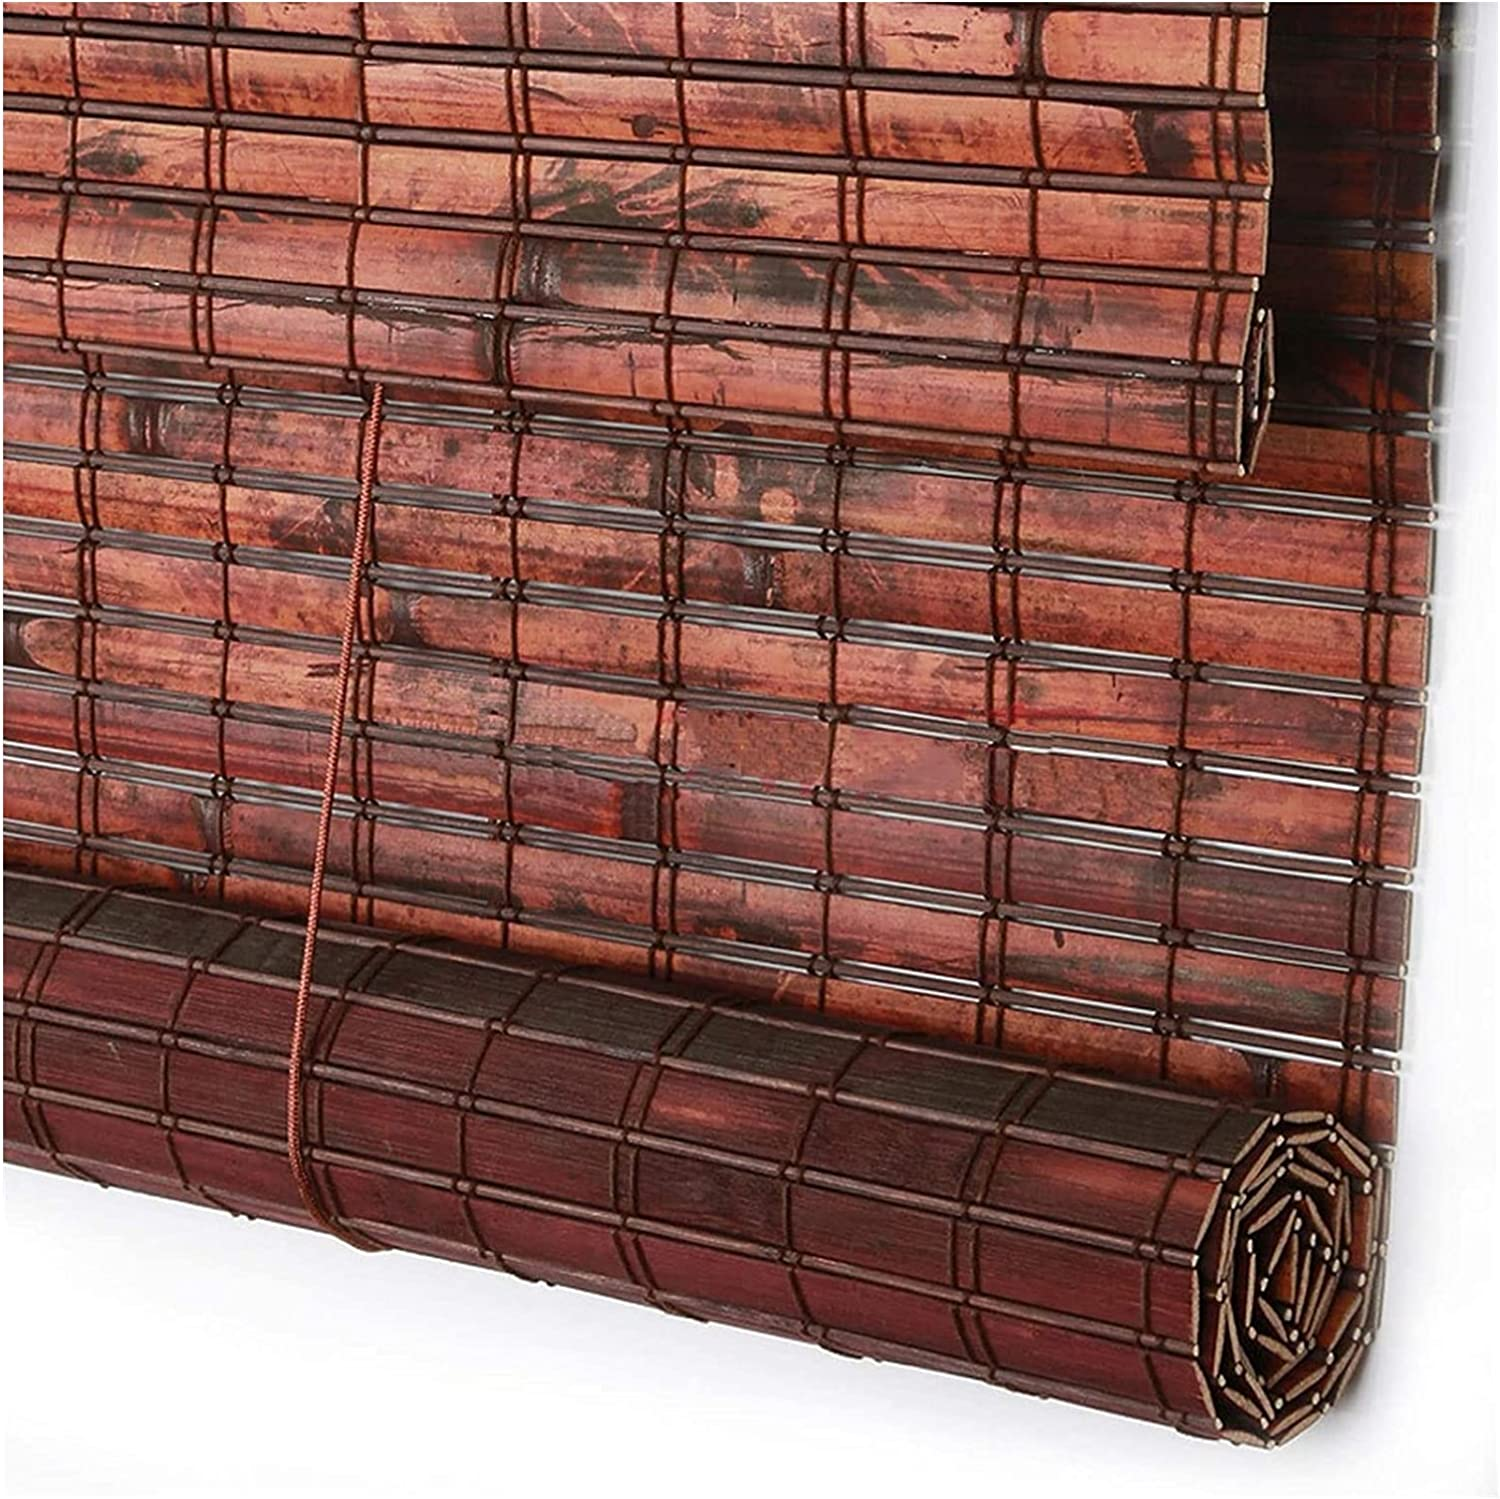 Bamboo Blinds for Outlet ☆ Free Shipping Windows Inexpensive Heavy Duty Louv Natural Curtain